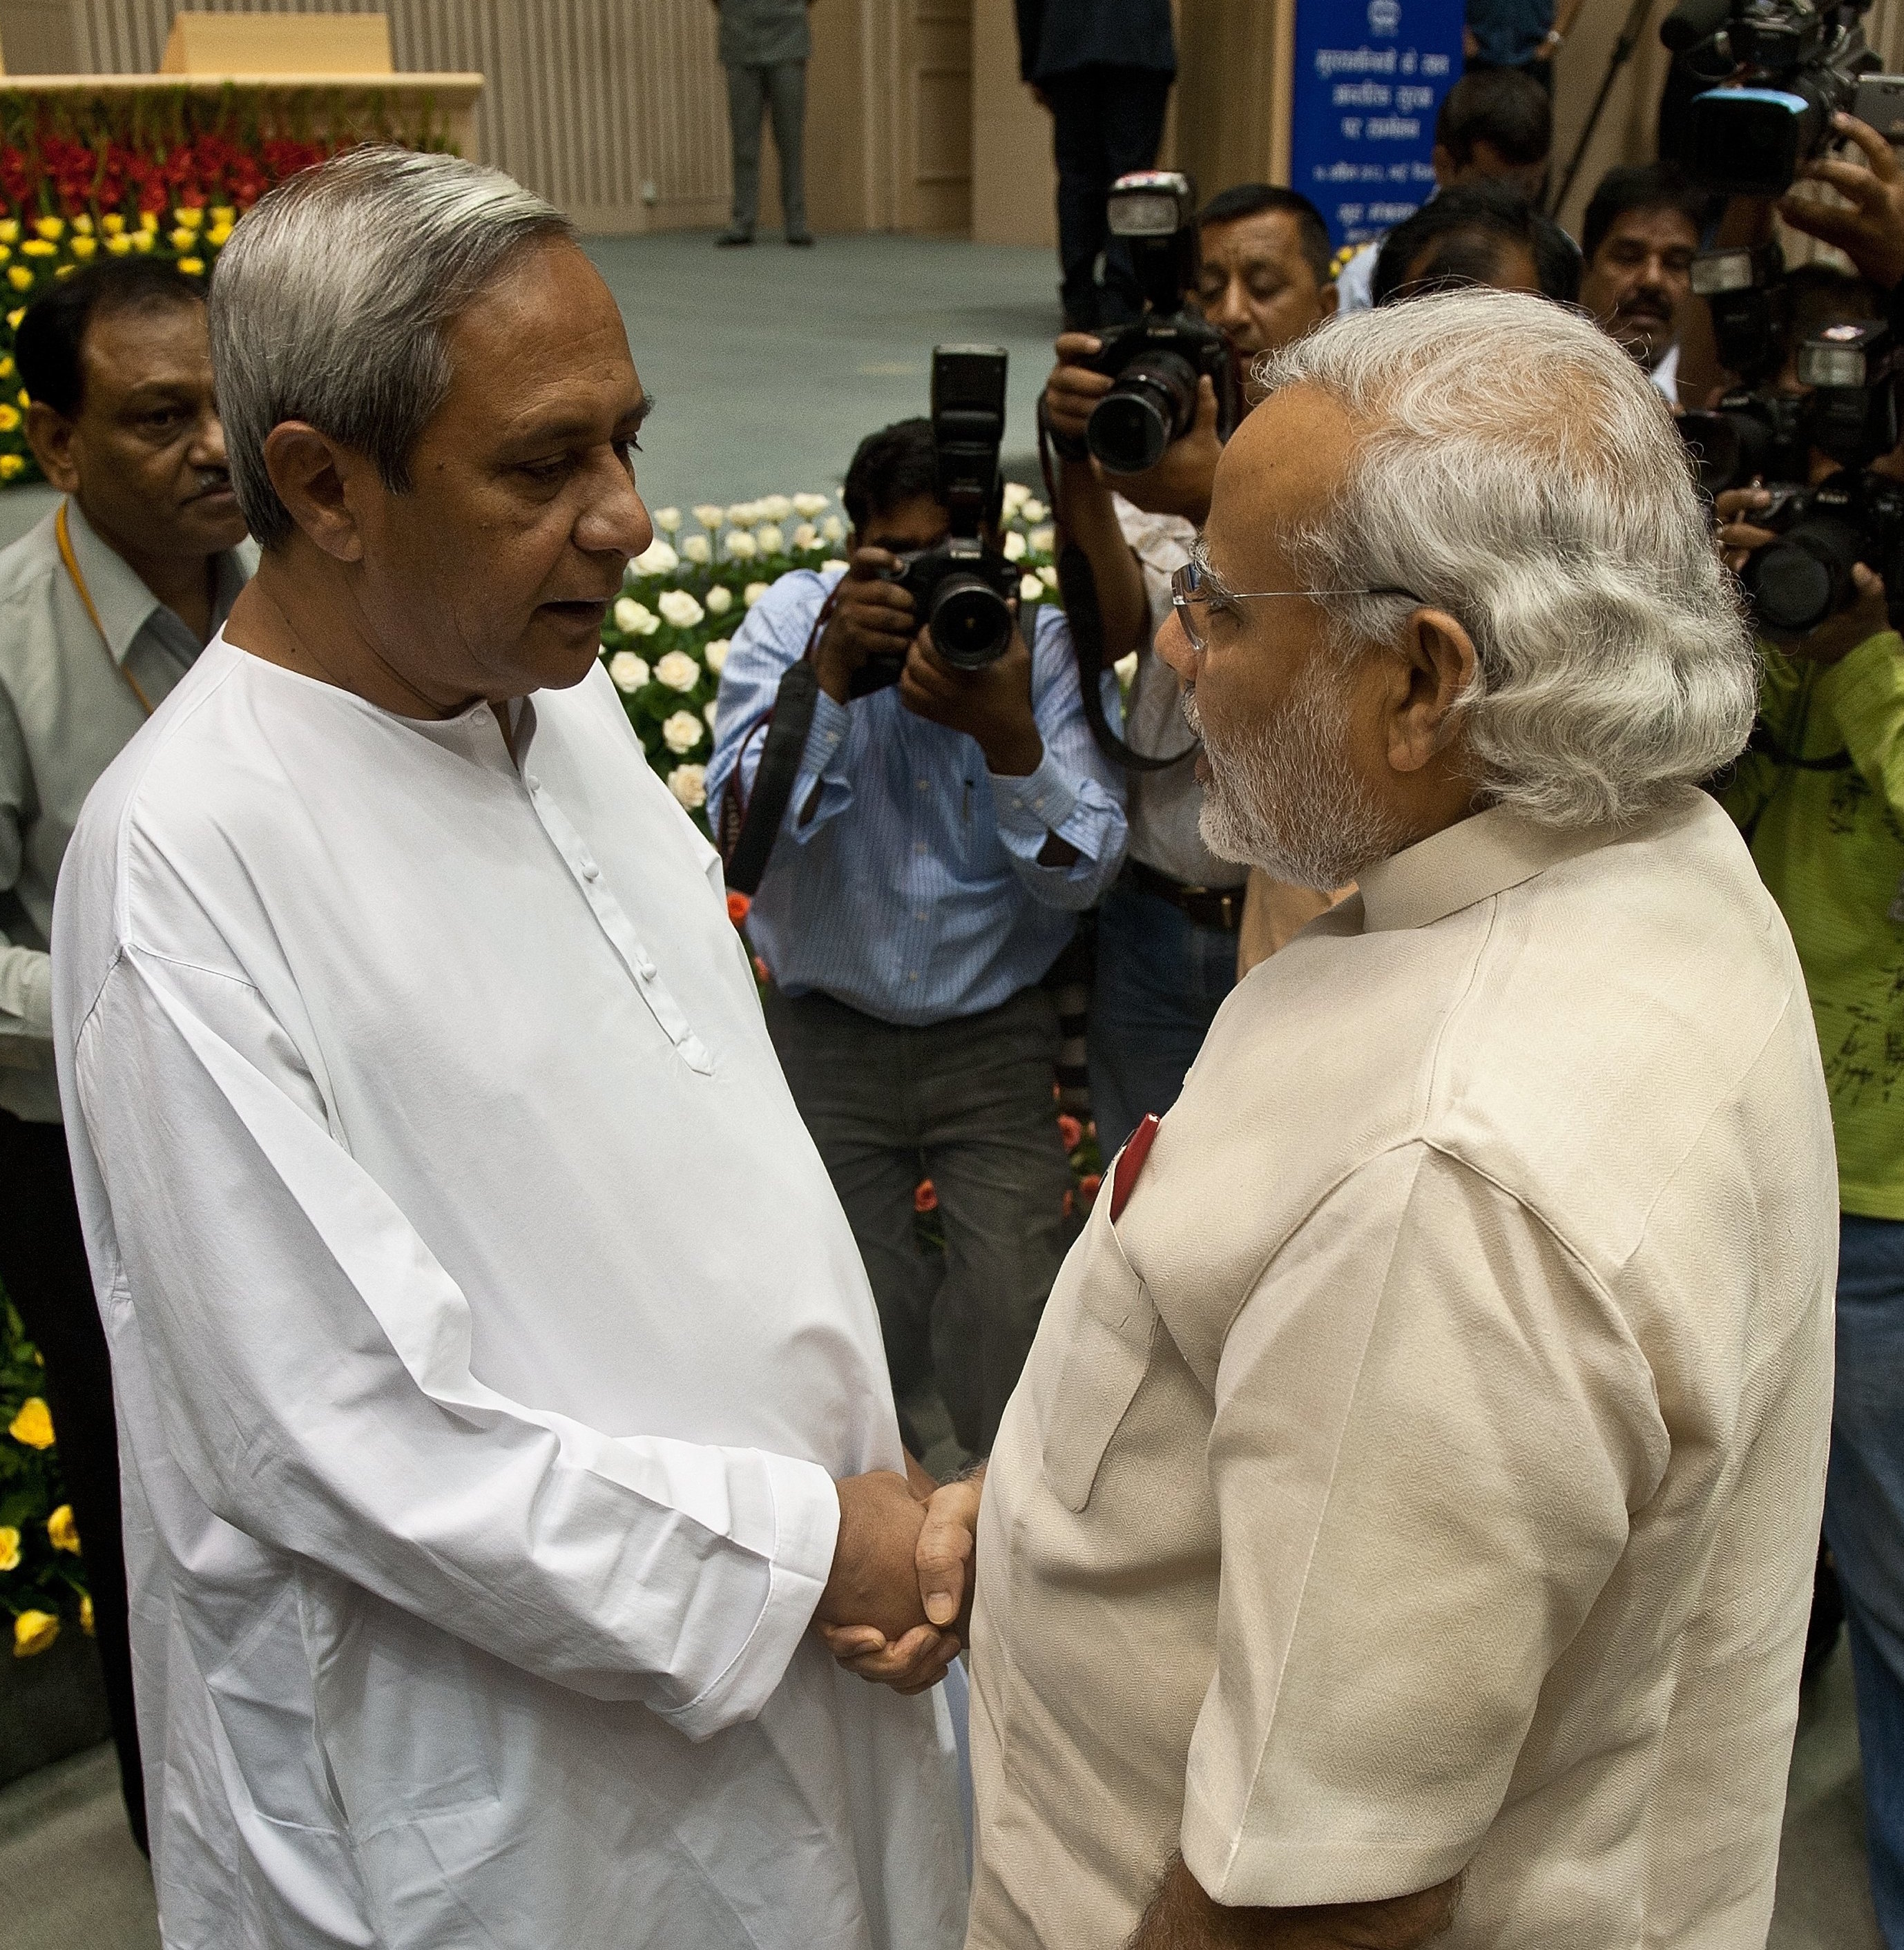 The BJP-led government announced the election as soon as it was assured of the support of the Biju Janata Dal, led by Naveen Patnaik (left), and the Telangana Rashtriya Samithi. (Credit: AFP)